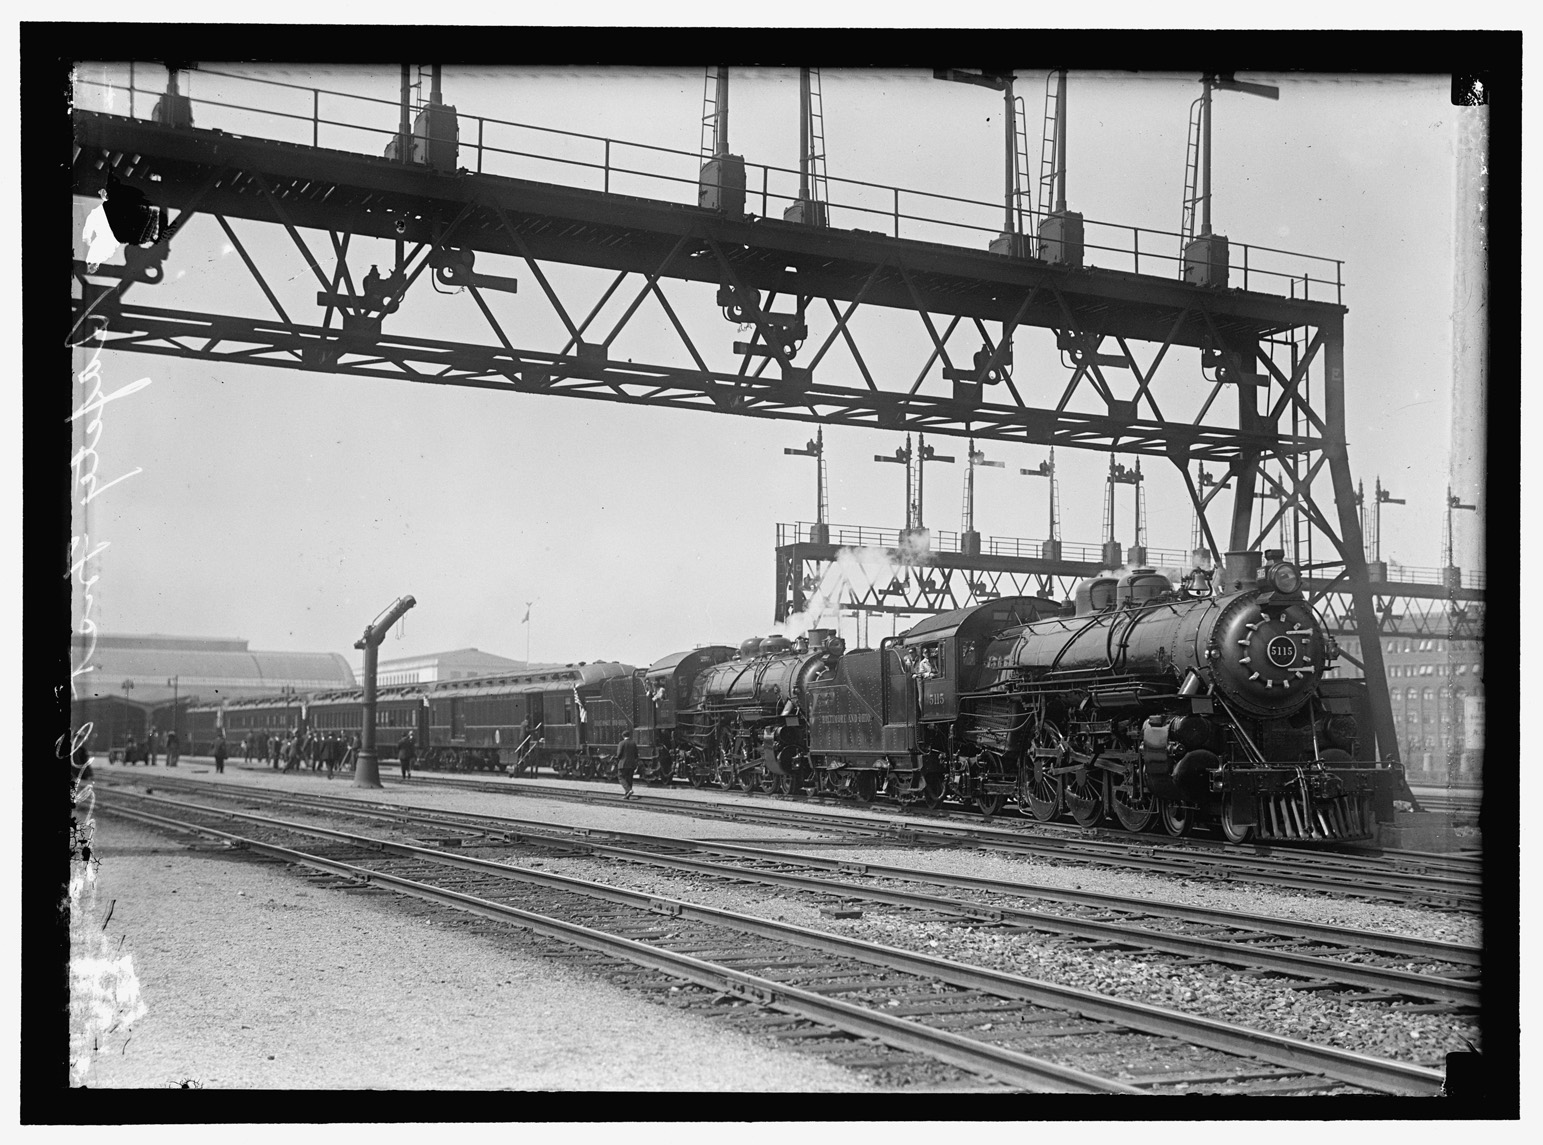 A black and white photograph shows a steam locomotive running on a track. There are several more tracks next to it as well as steel beams overhead. Buildings are in the background. People can be seen getting into and out of the passenger cars attached to the steam locomotive.